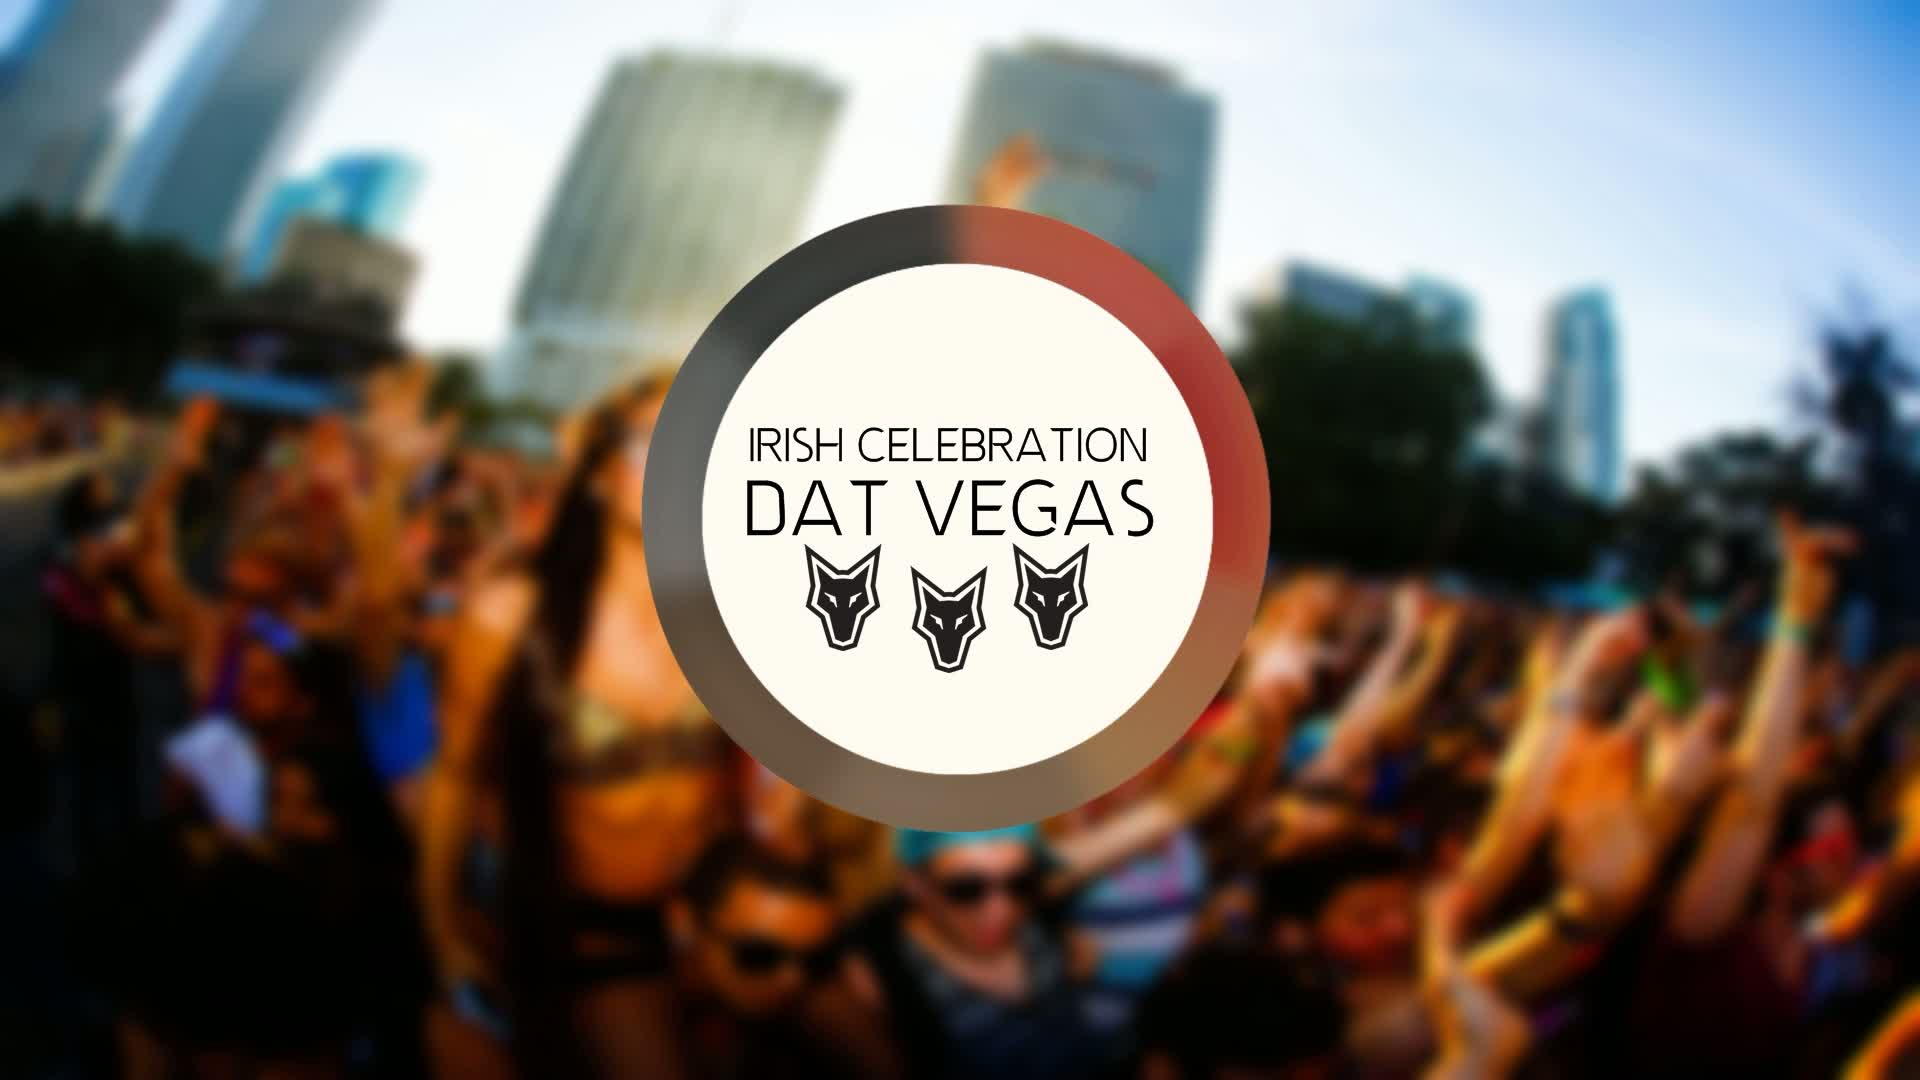 DAT VEGAS - Irish Celebration (Original Mix)